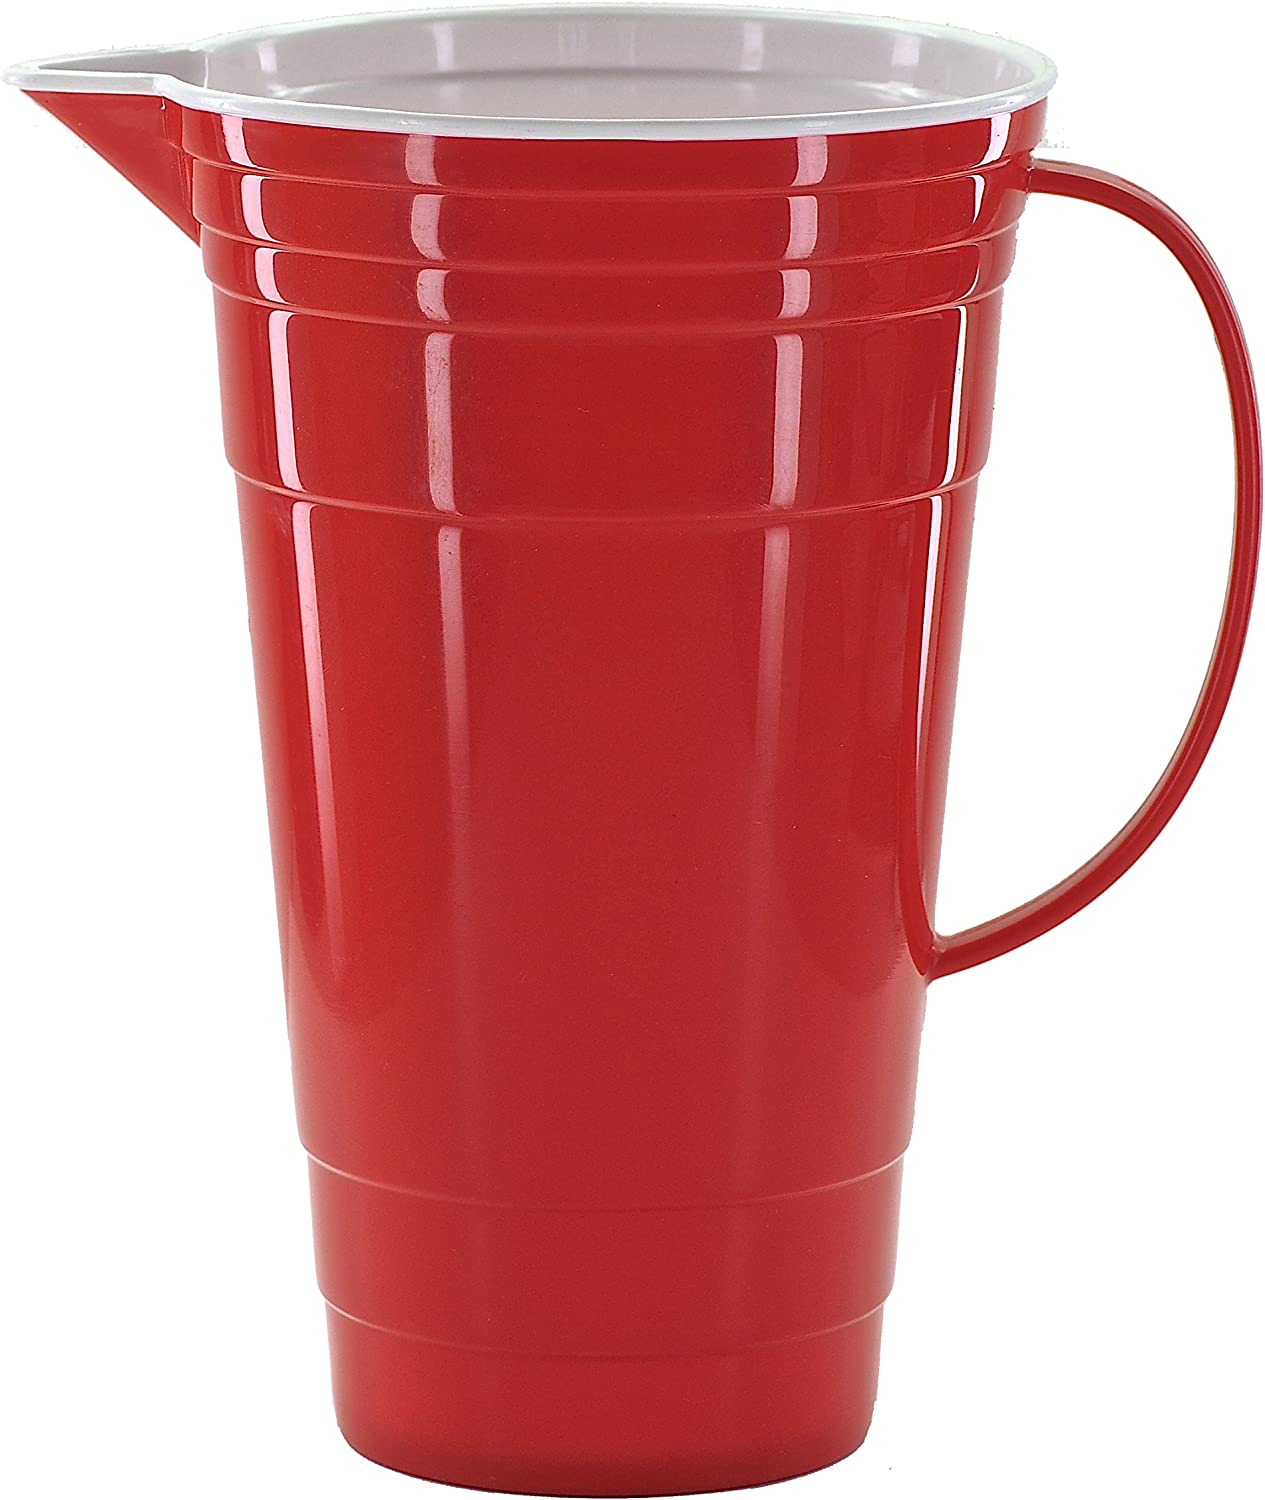 Amazon Com Mr Ice Bucket Double Walled Insulated 64 Oz Party Pitcher Red Kitchen Dining